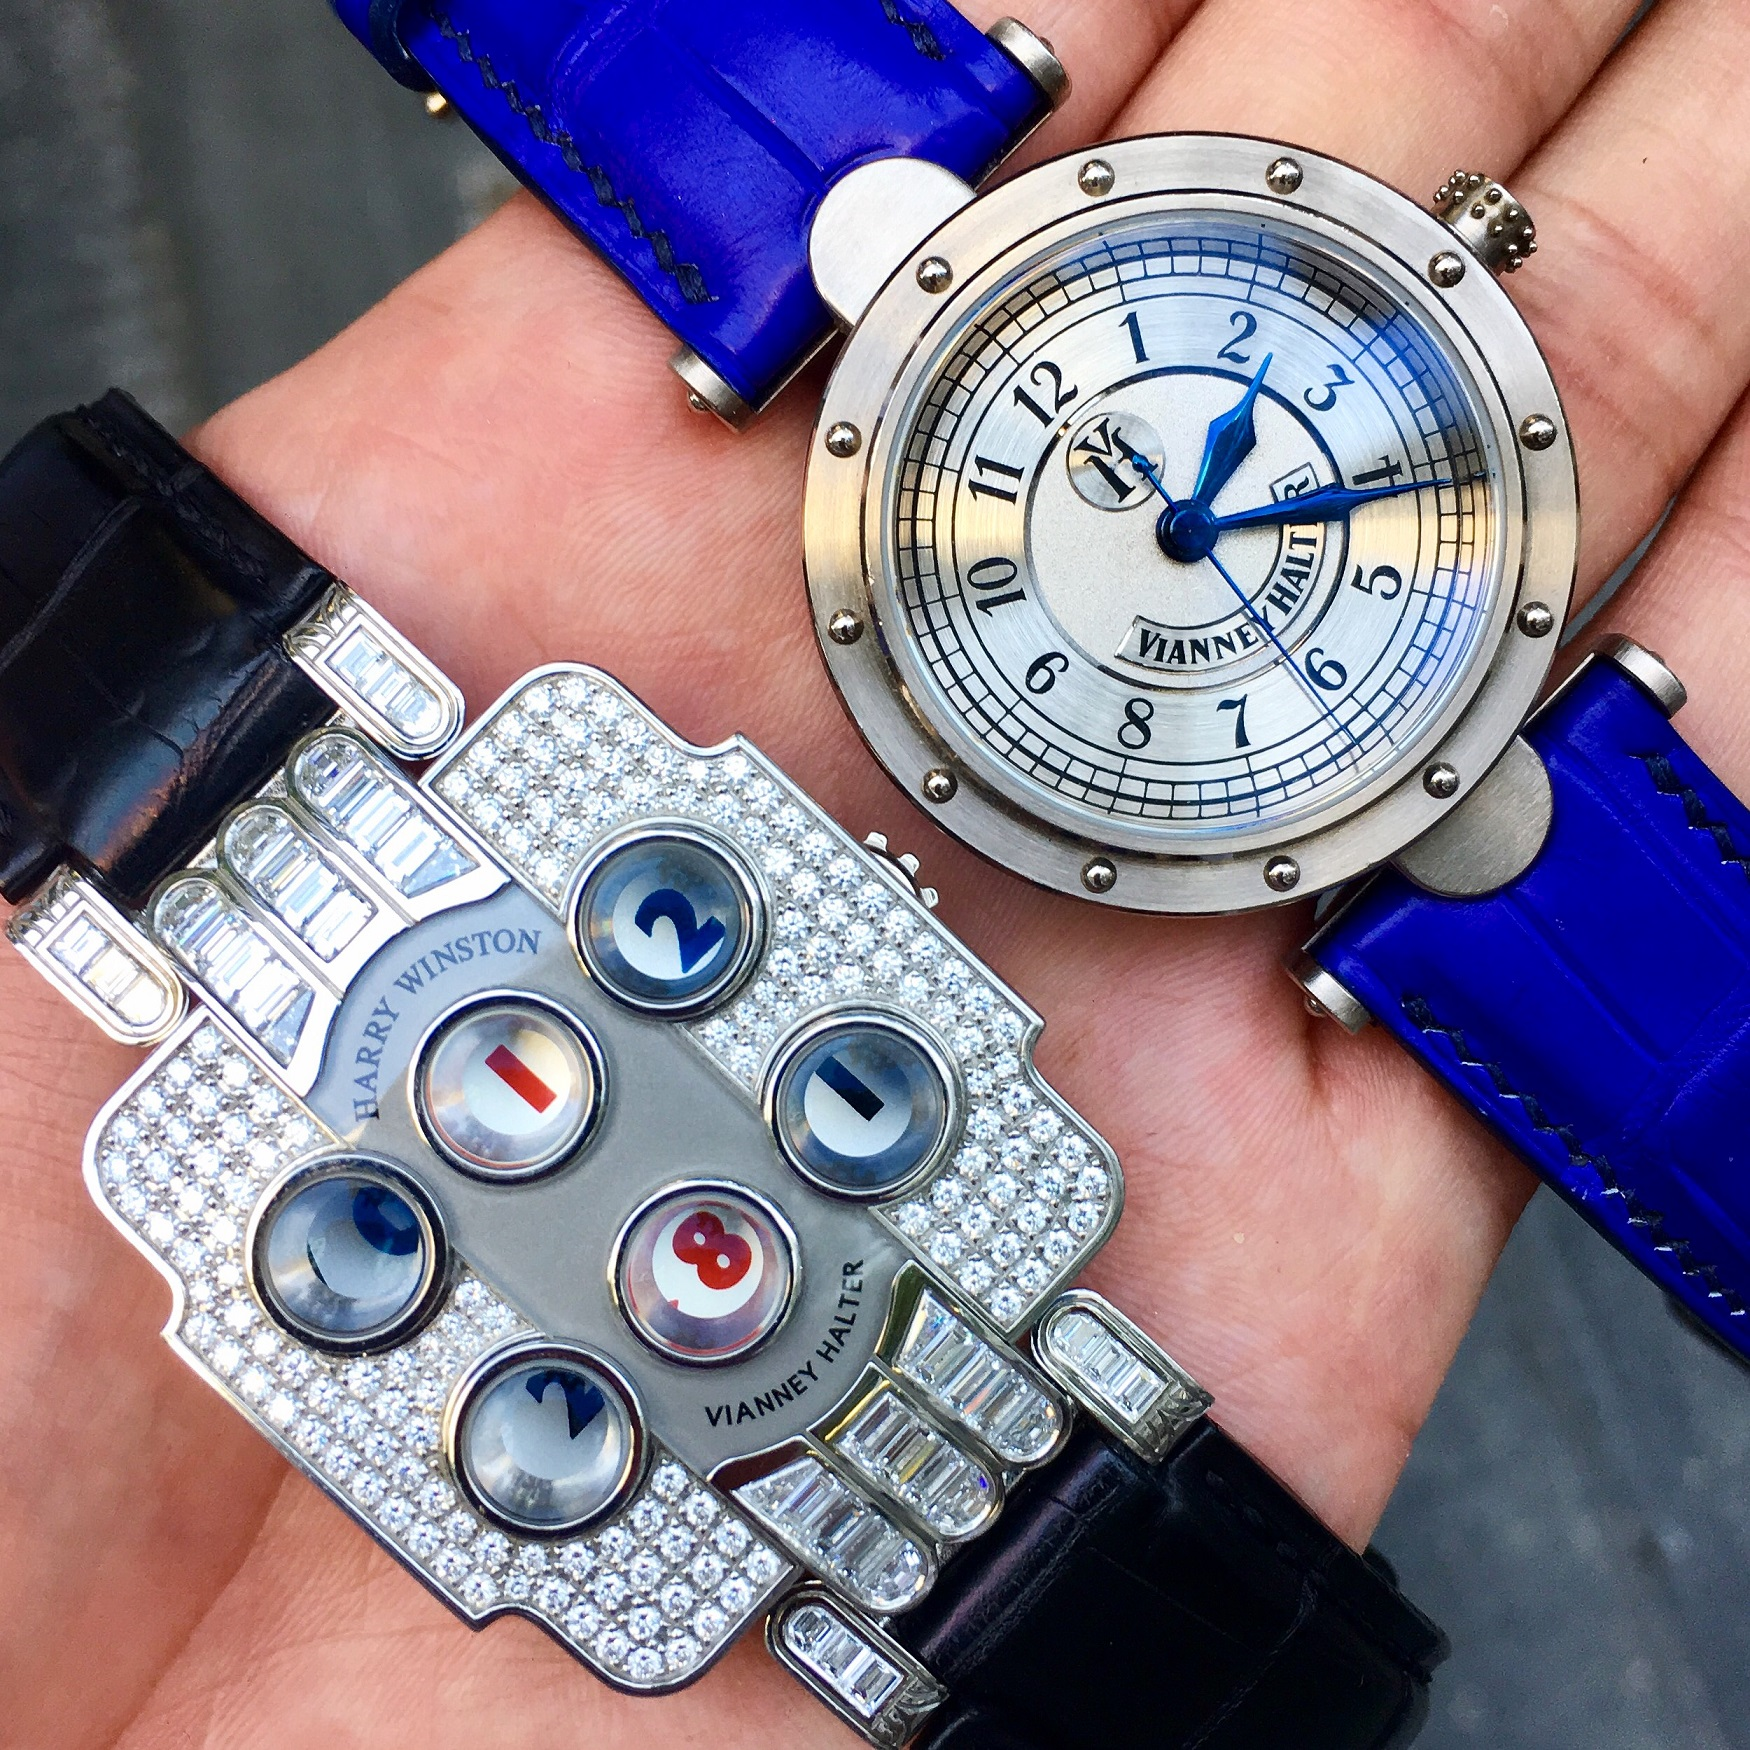 Dual Vianney Halter creation. Photo courtesy of Tom Chng @SingaporeWatchClub).